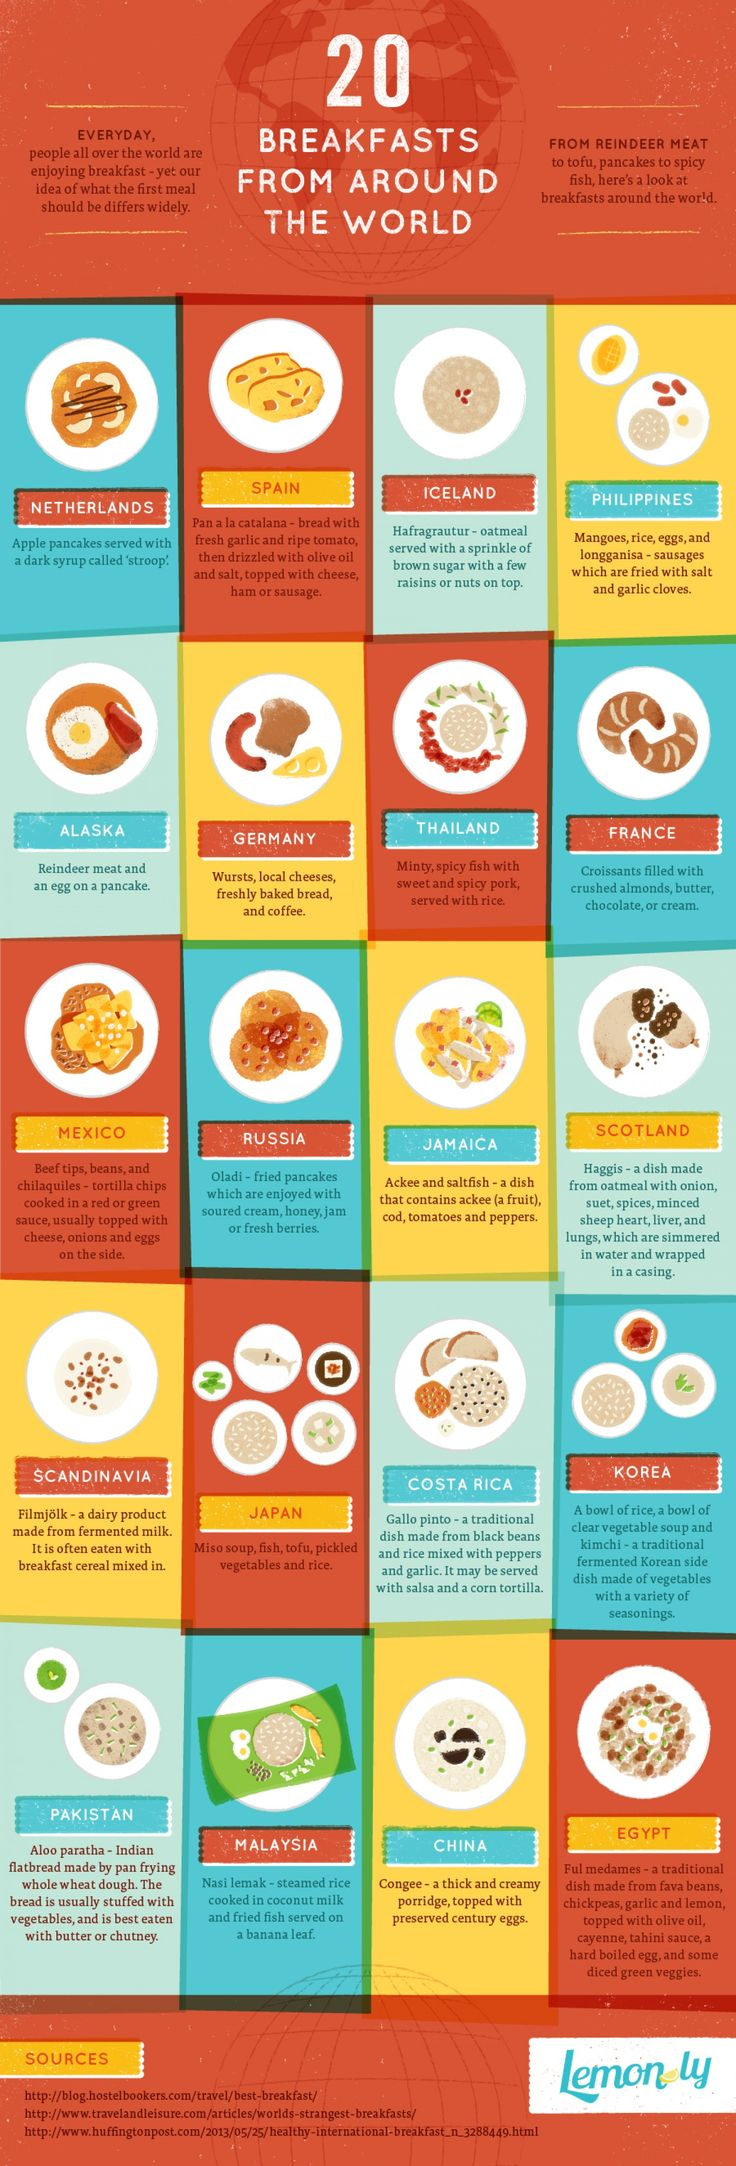 20 Breakfasts From Around the World to show how cultures affects our food choices. Something to use for the provocation?